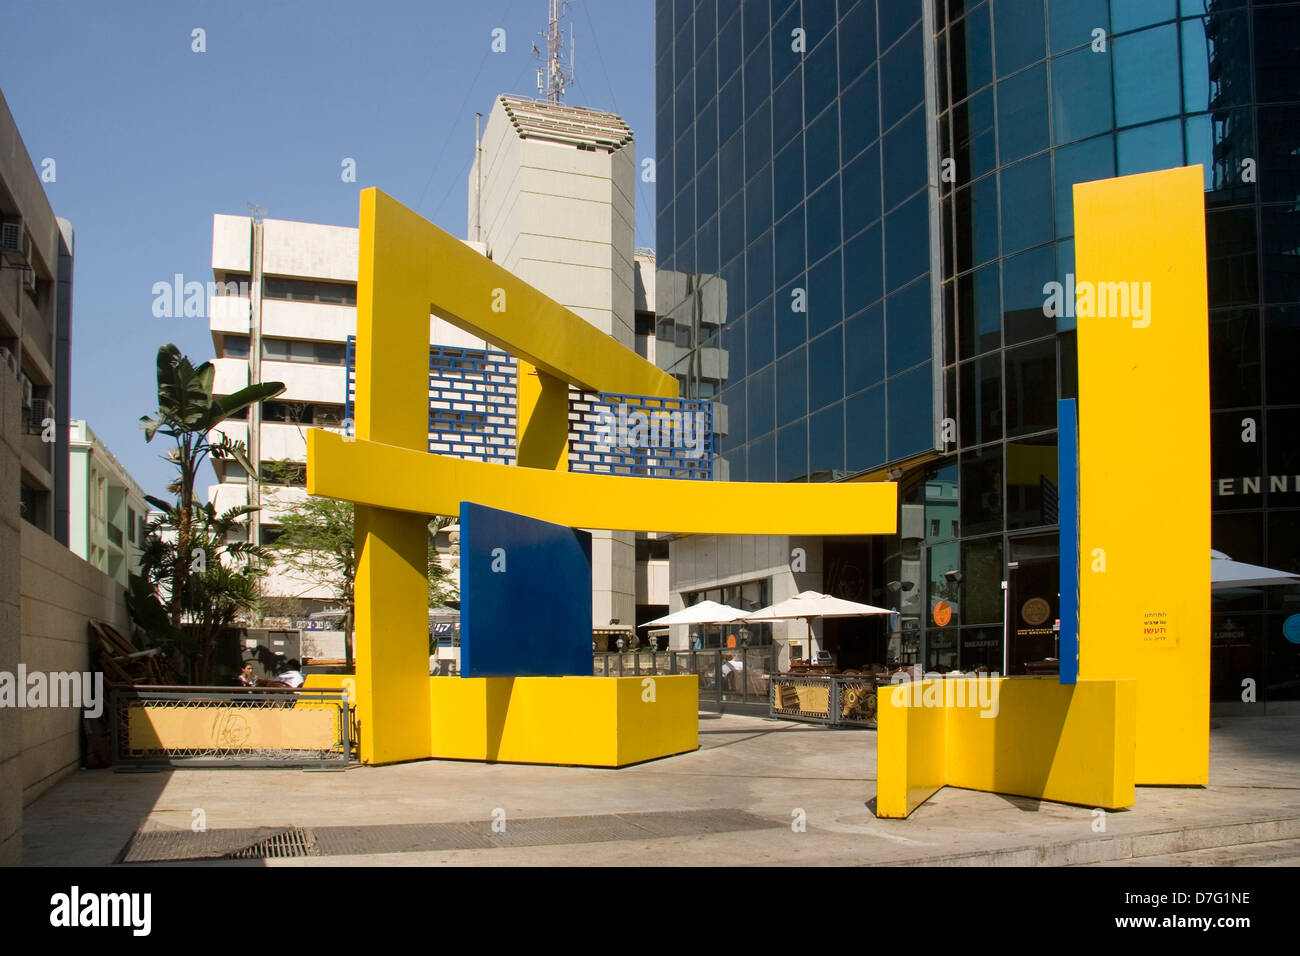 sculpture in rothschild boulevard, tel aviv (2007) - Stock Image